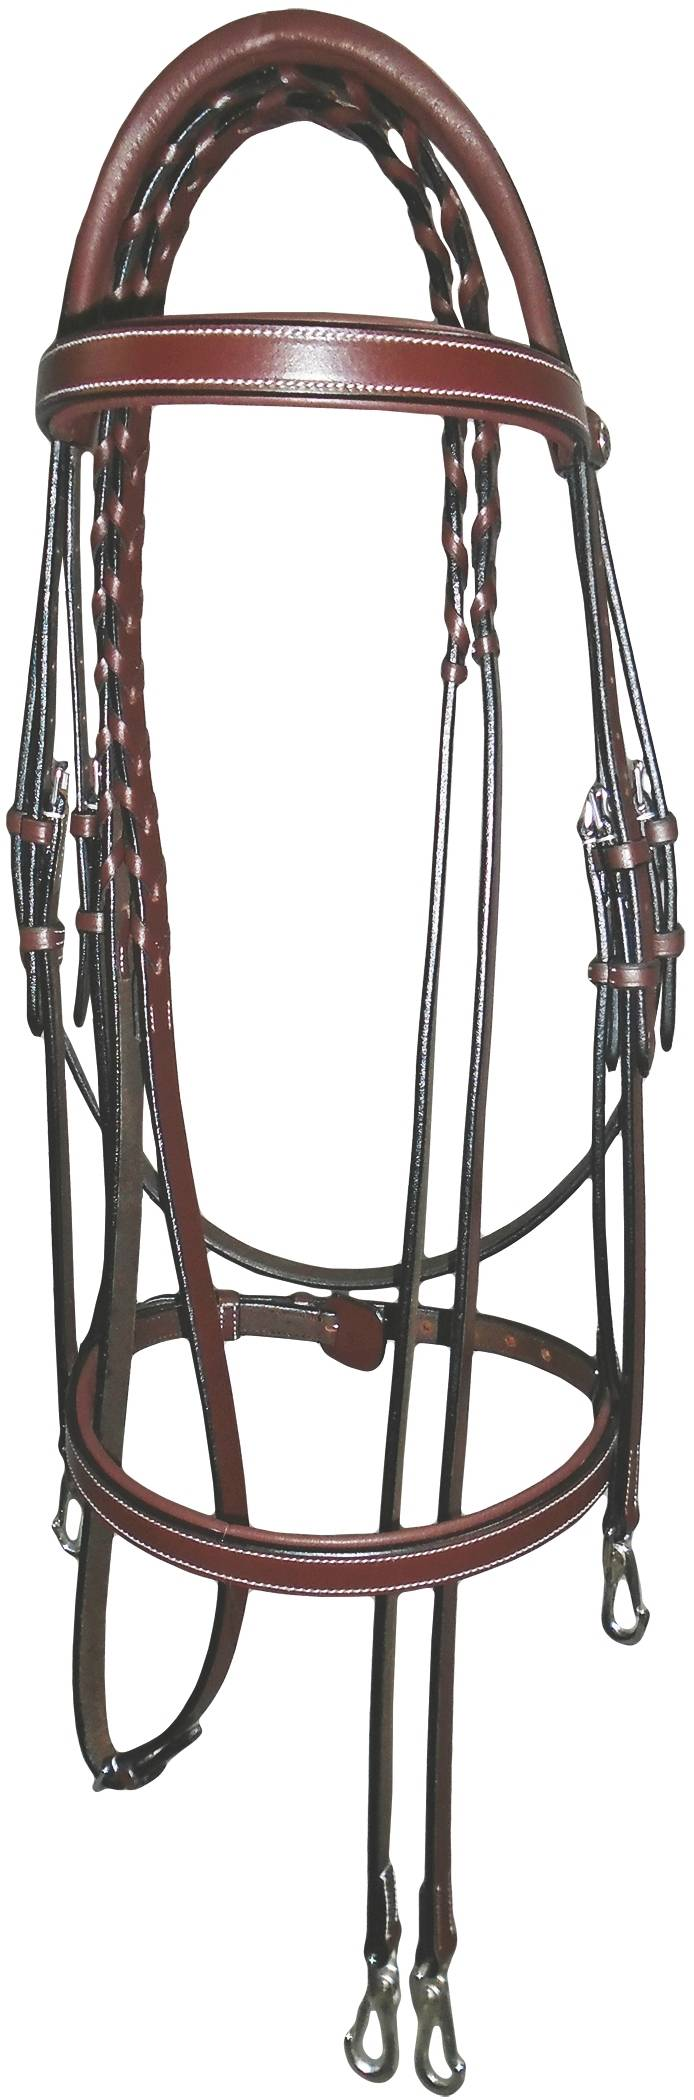 Henri de Rivel Training Bridle